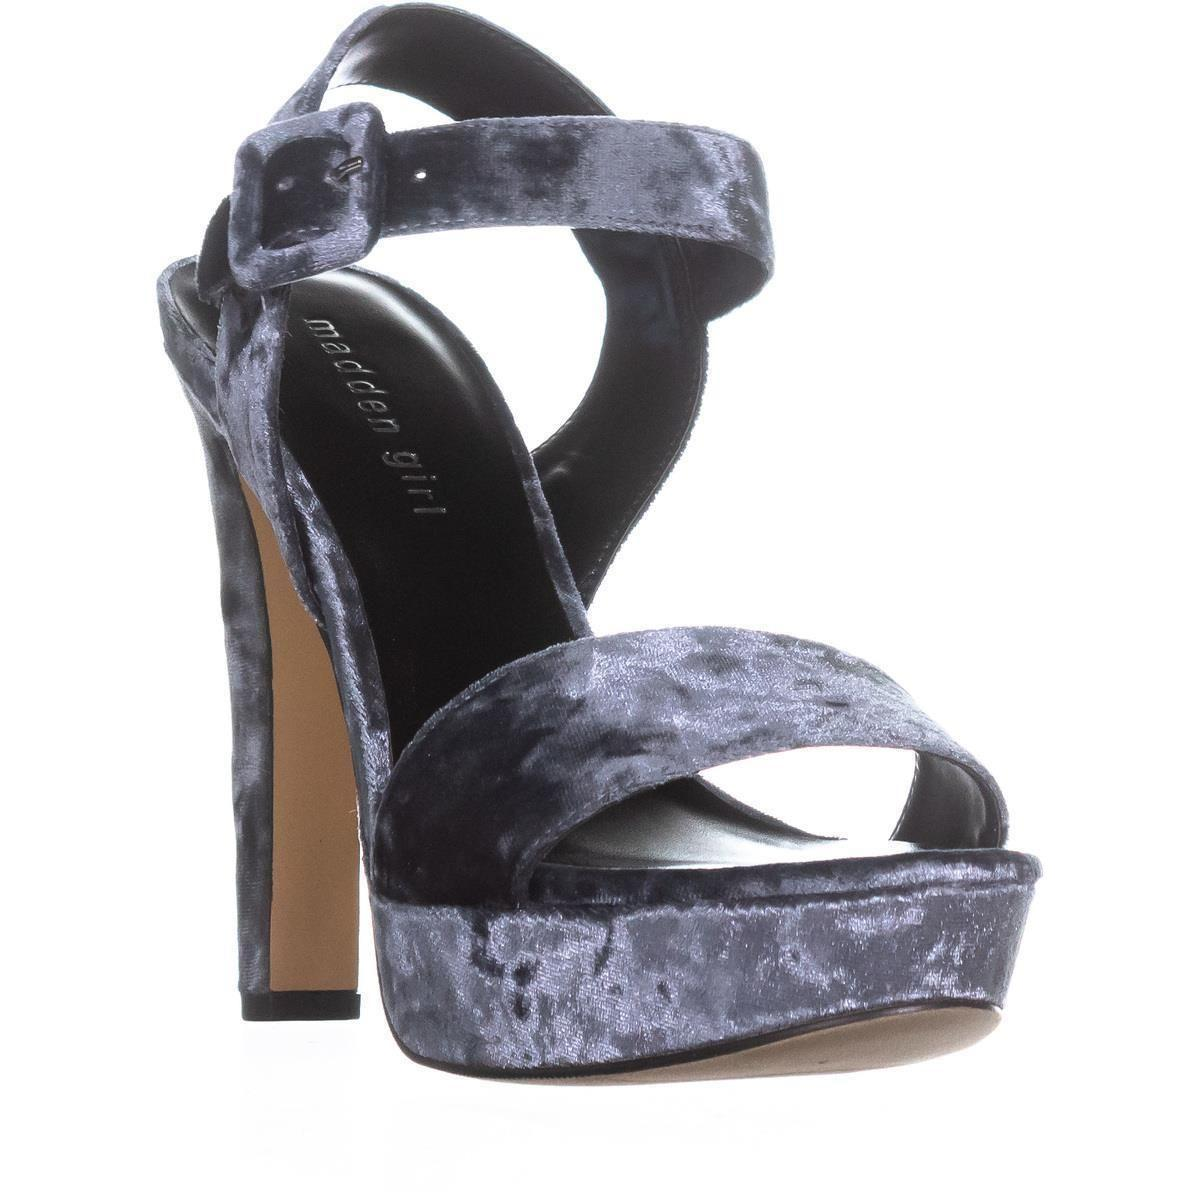 4d4f715494e Lyst - Madden Girl Rolloo Heeled Sandal in Gray - Save 55%